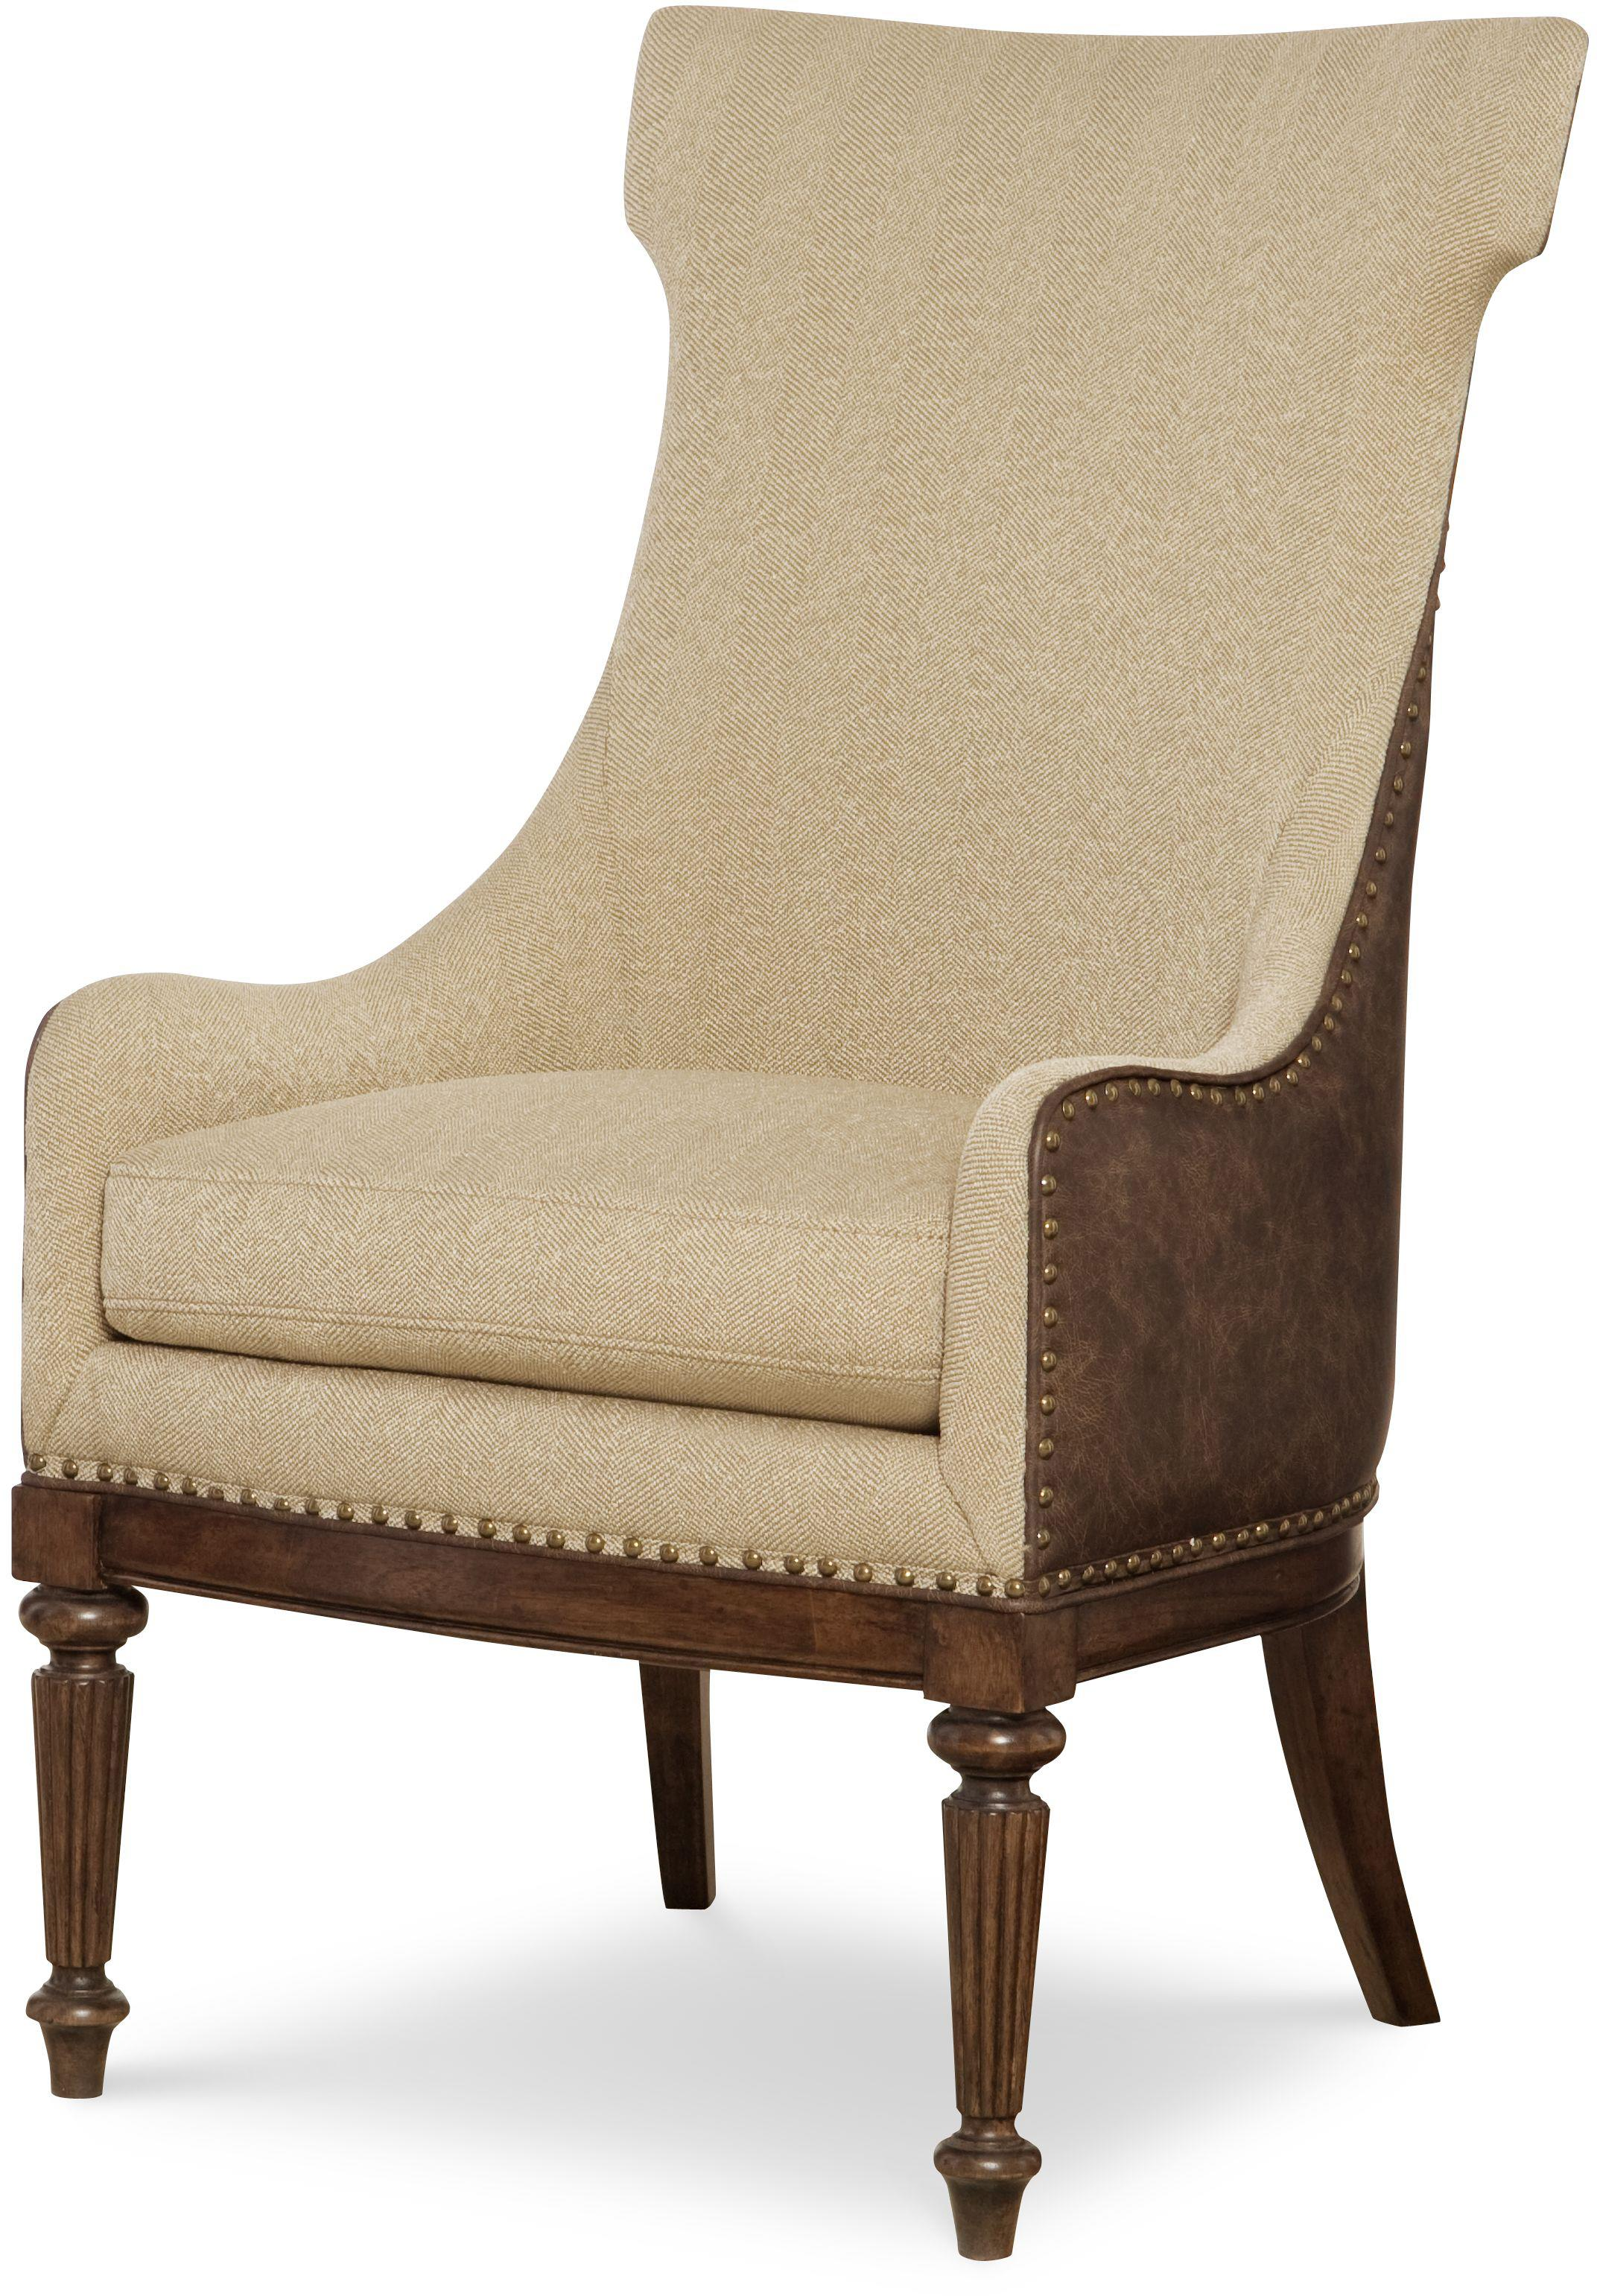 Legacy Classic Barrington Farm Upholstered Host Chair  - Item Number: 5200-451 KD